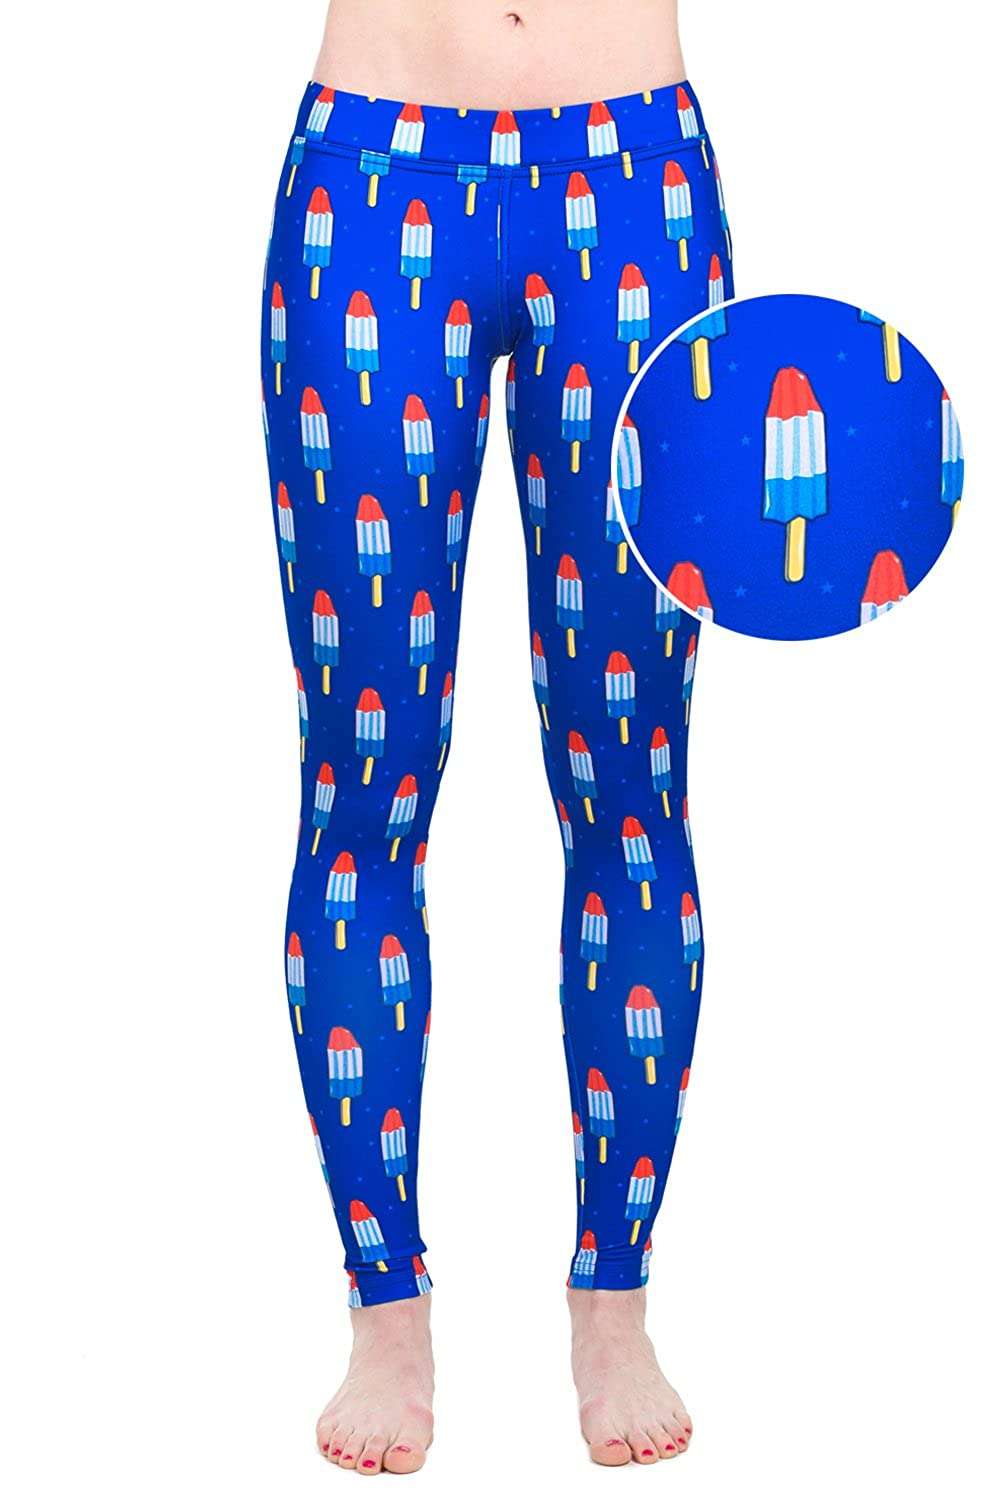 5617104f1def0 Patriotic leggings are made with 95% polyester and 5% elastic. Tights  feature a super soft and comfortable fit. Leggings are perfect for the 4th  of July, ...